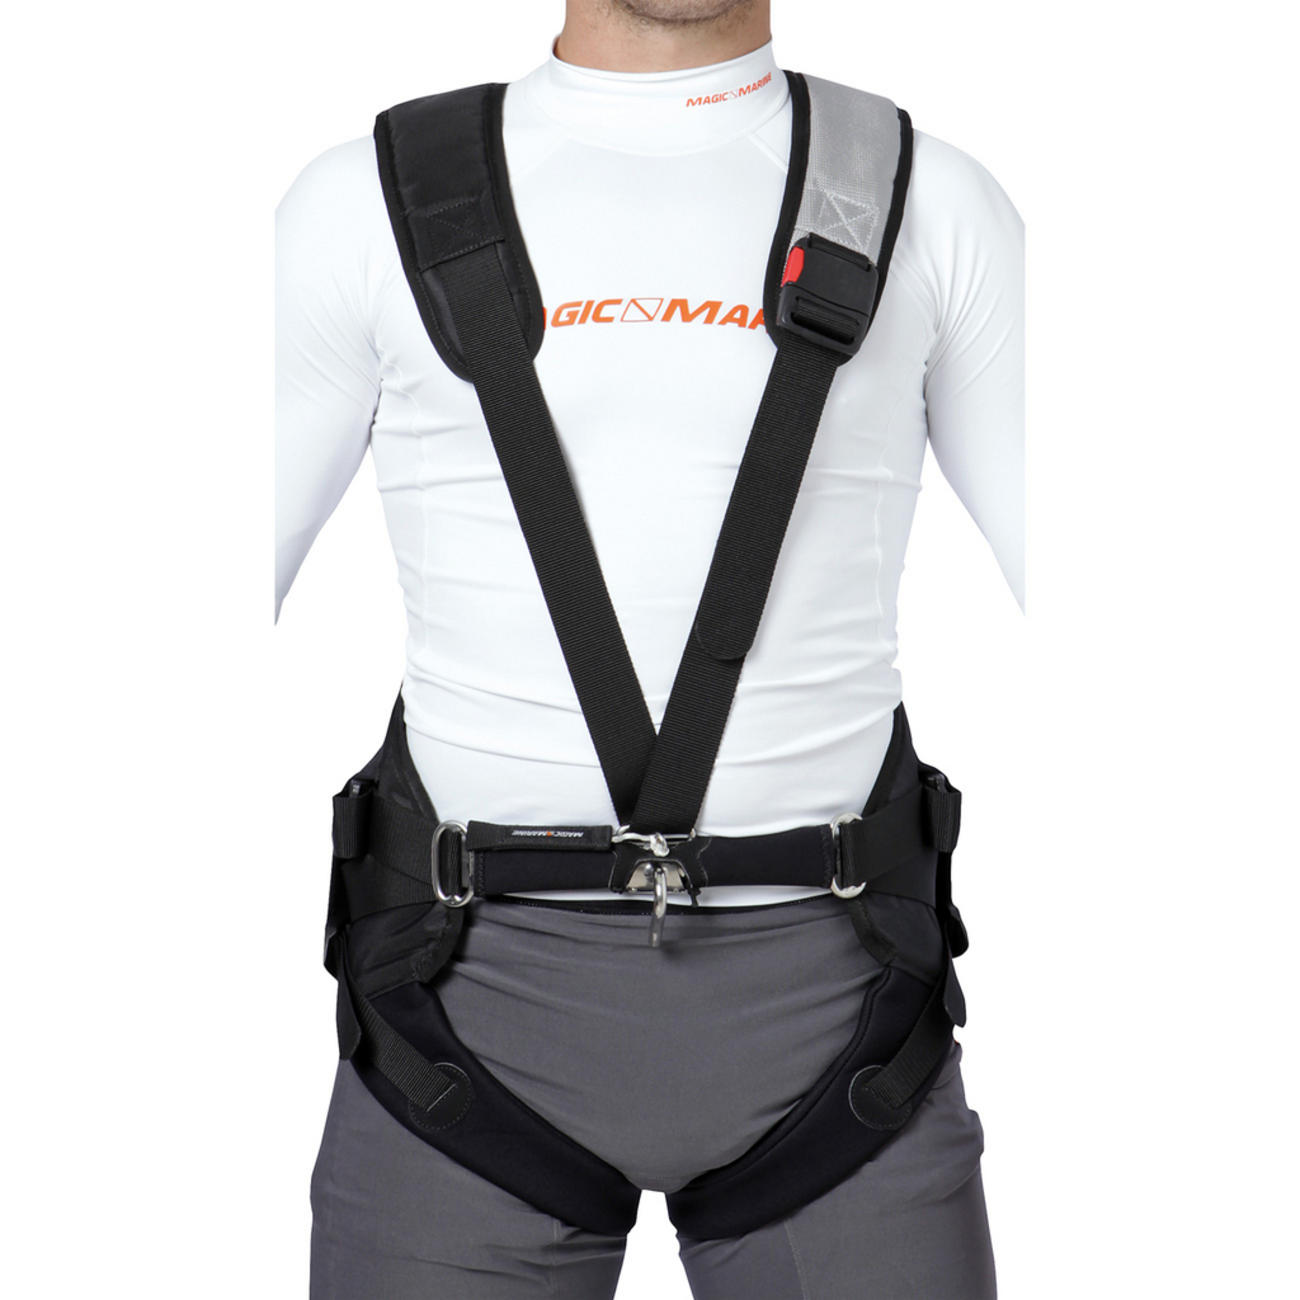 PRO RACING HARNESS